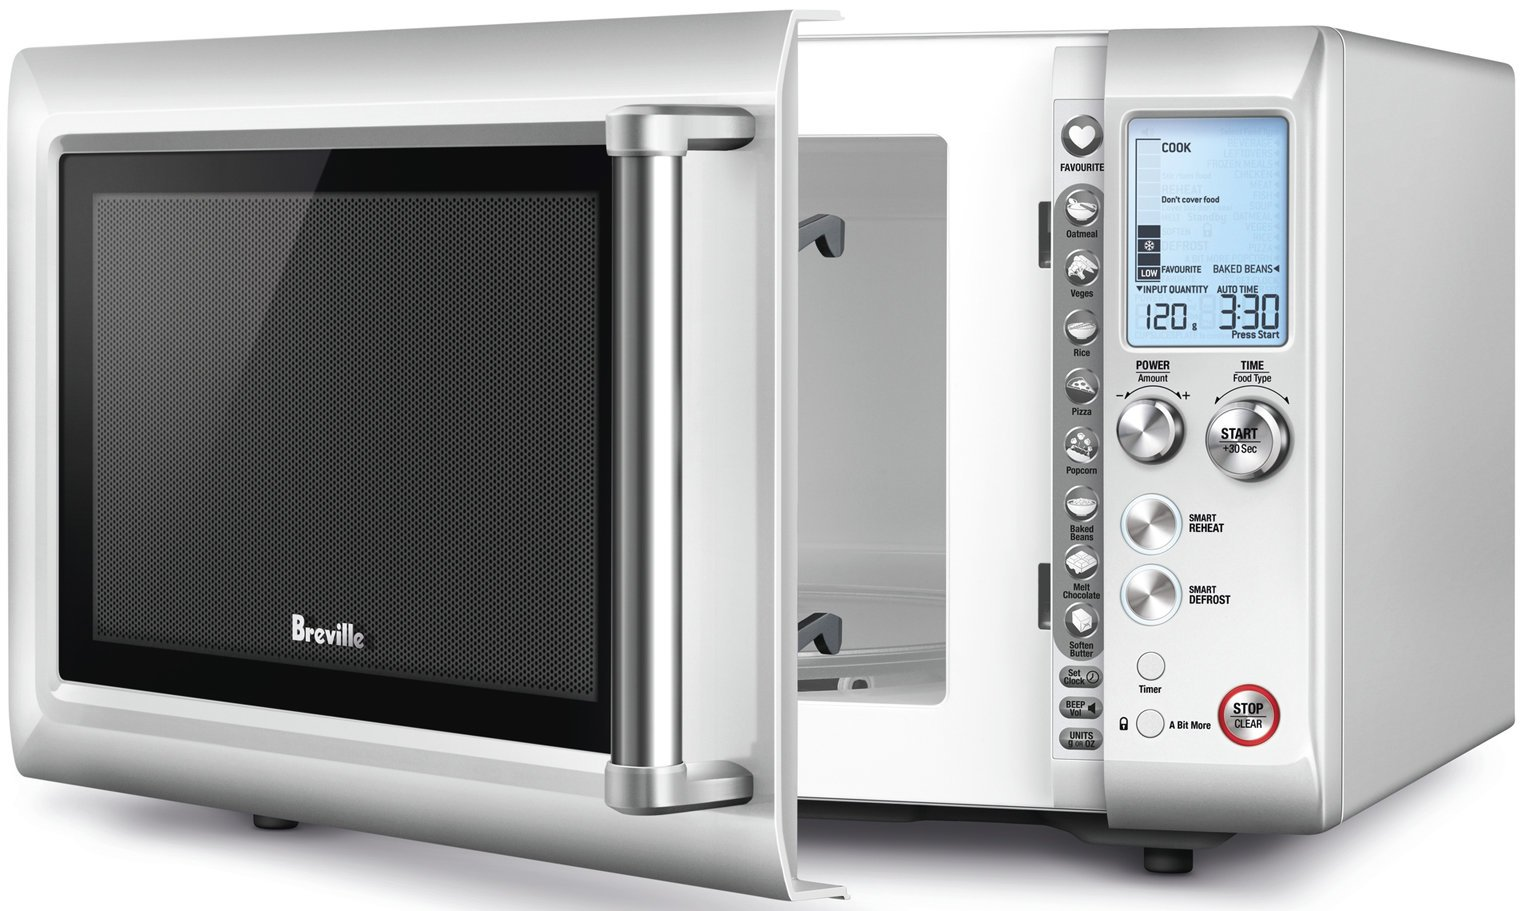 breville bmo625bss 25l the quick touch compact microwave oven 900w